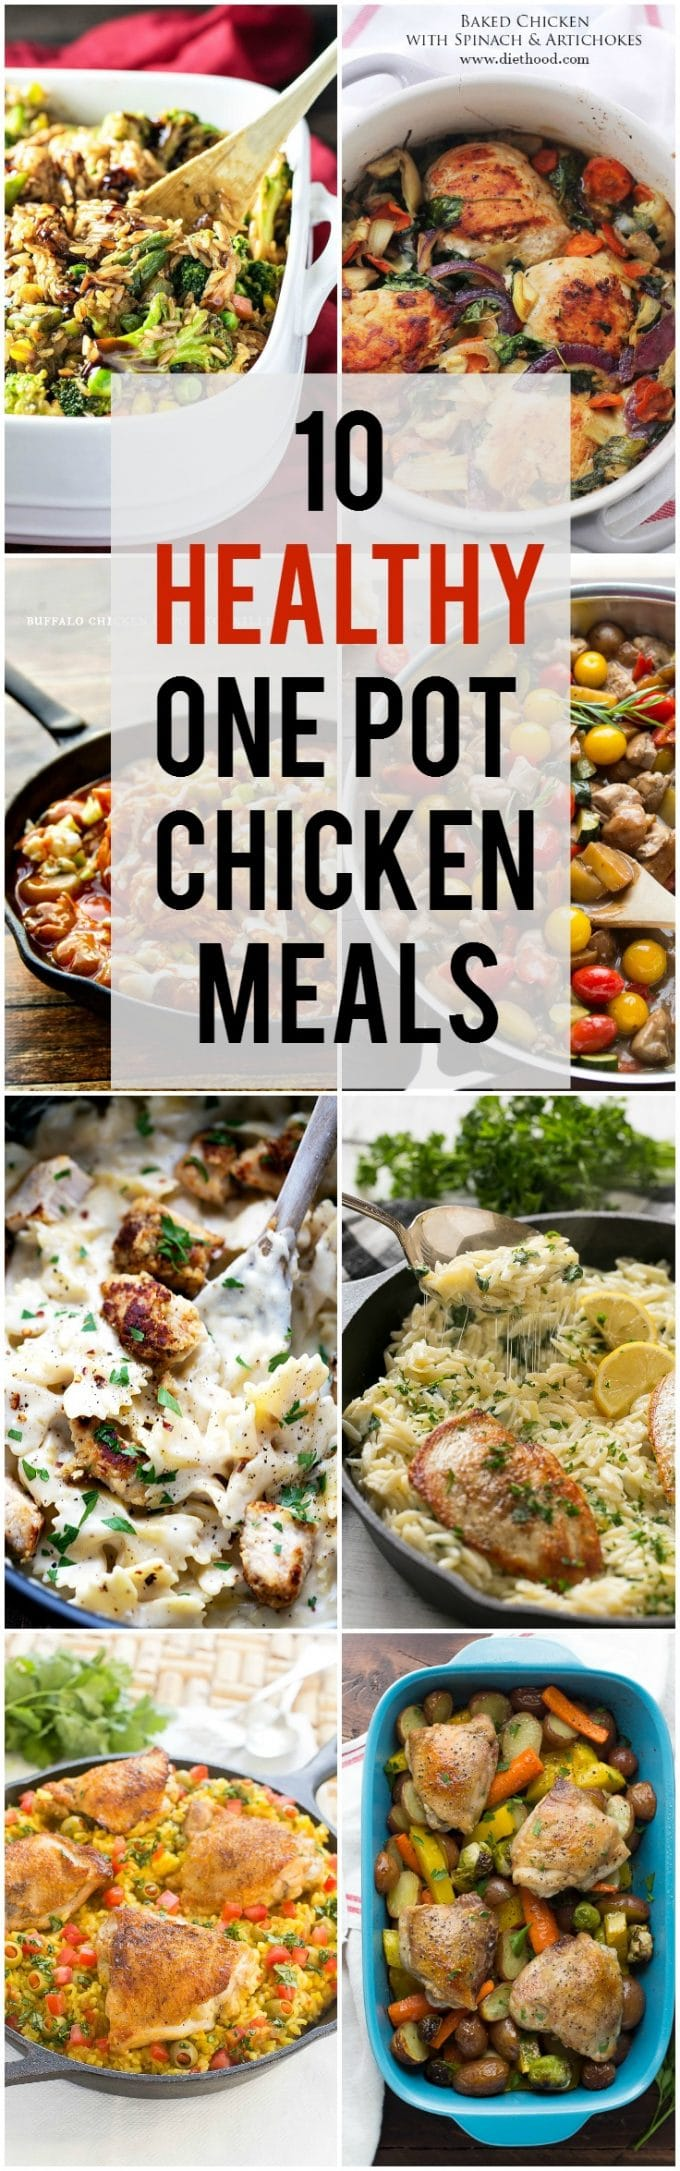 Healthy One Pot Chicken Meals | Chicken Dinners | Healthy Dinners #dinner #healthy #chicken